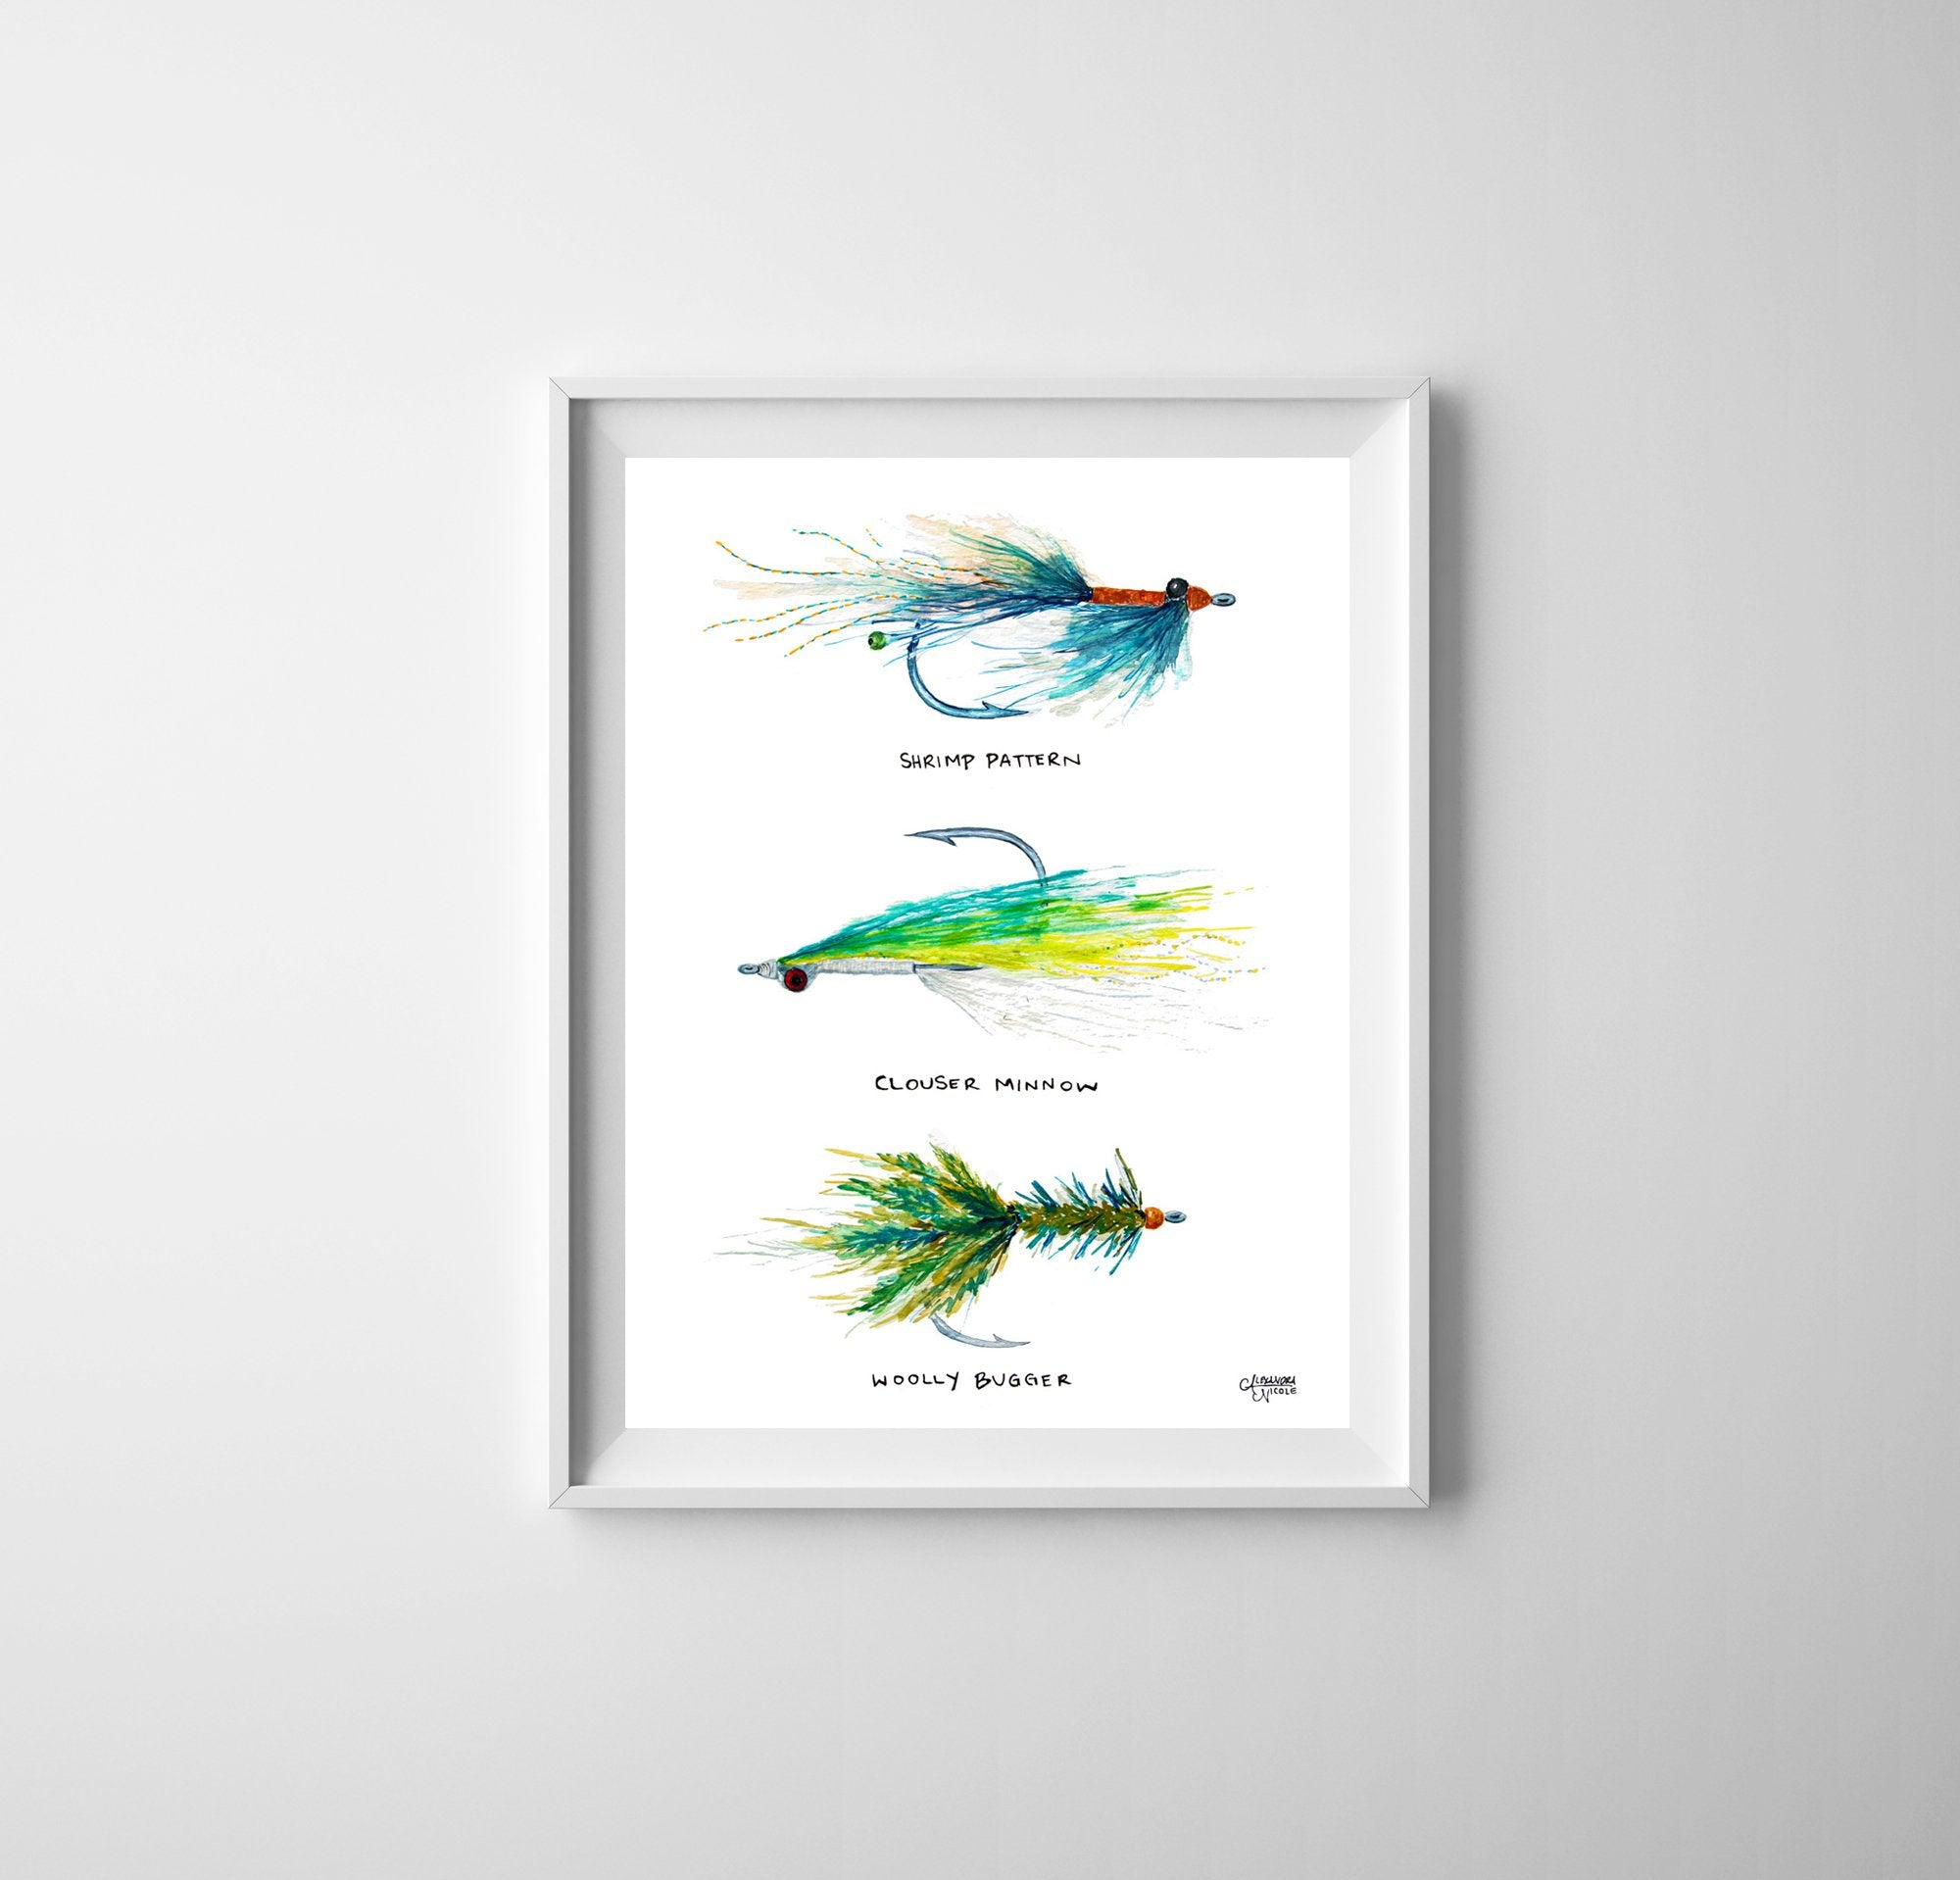 Fly Fishing Gift for the Fisherman or FisherWoman